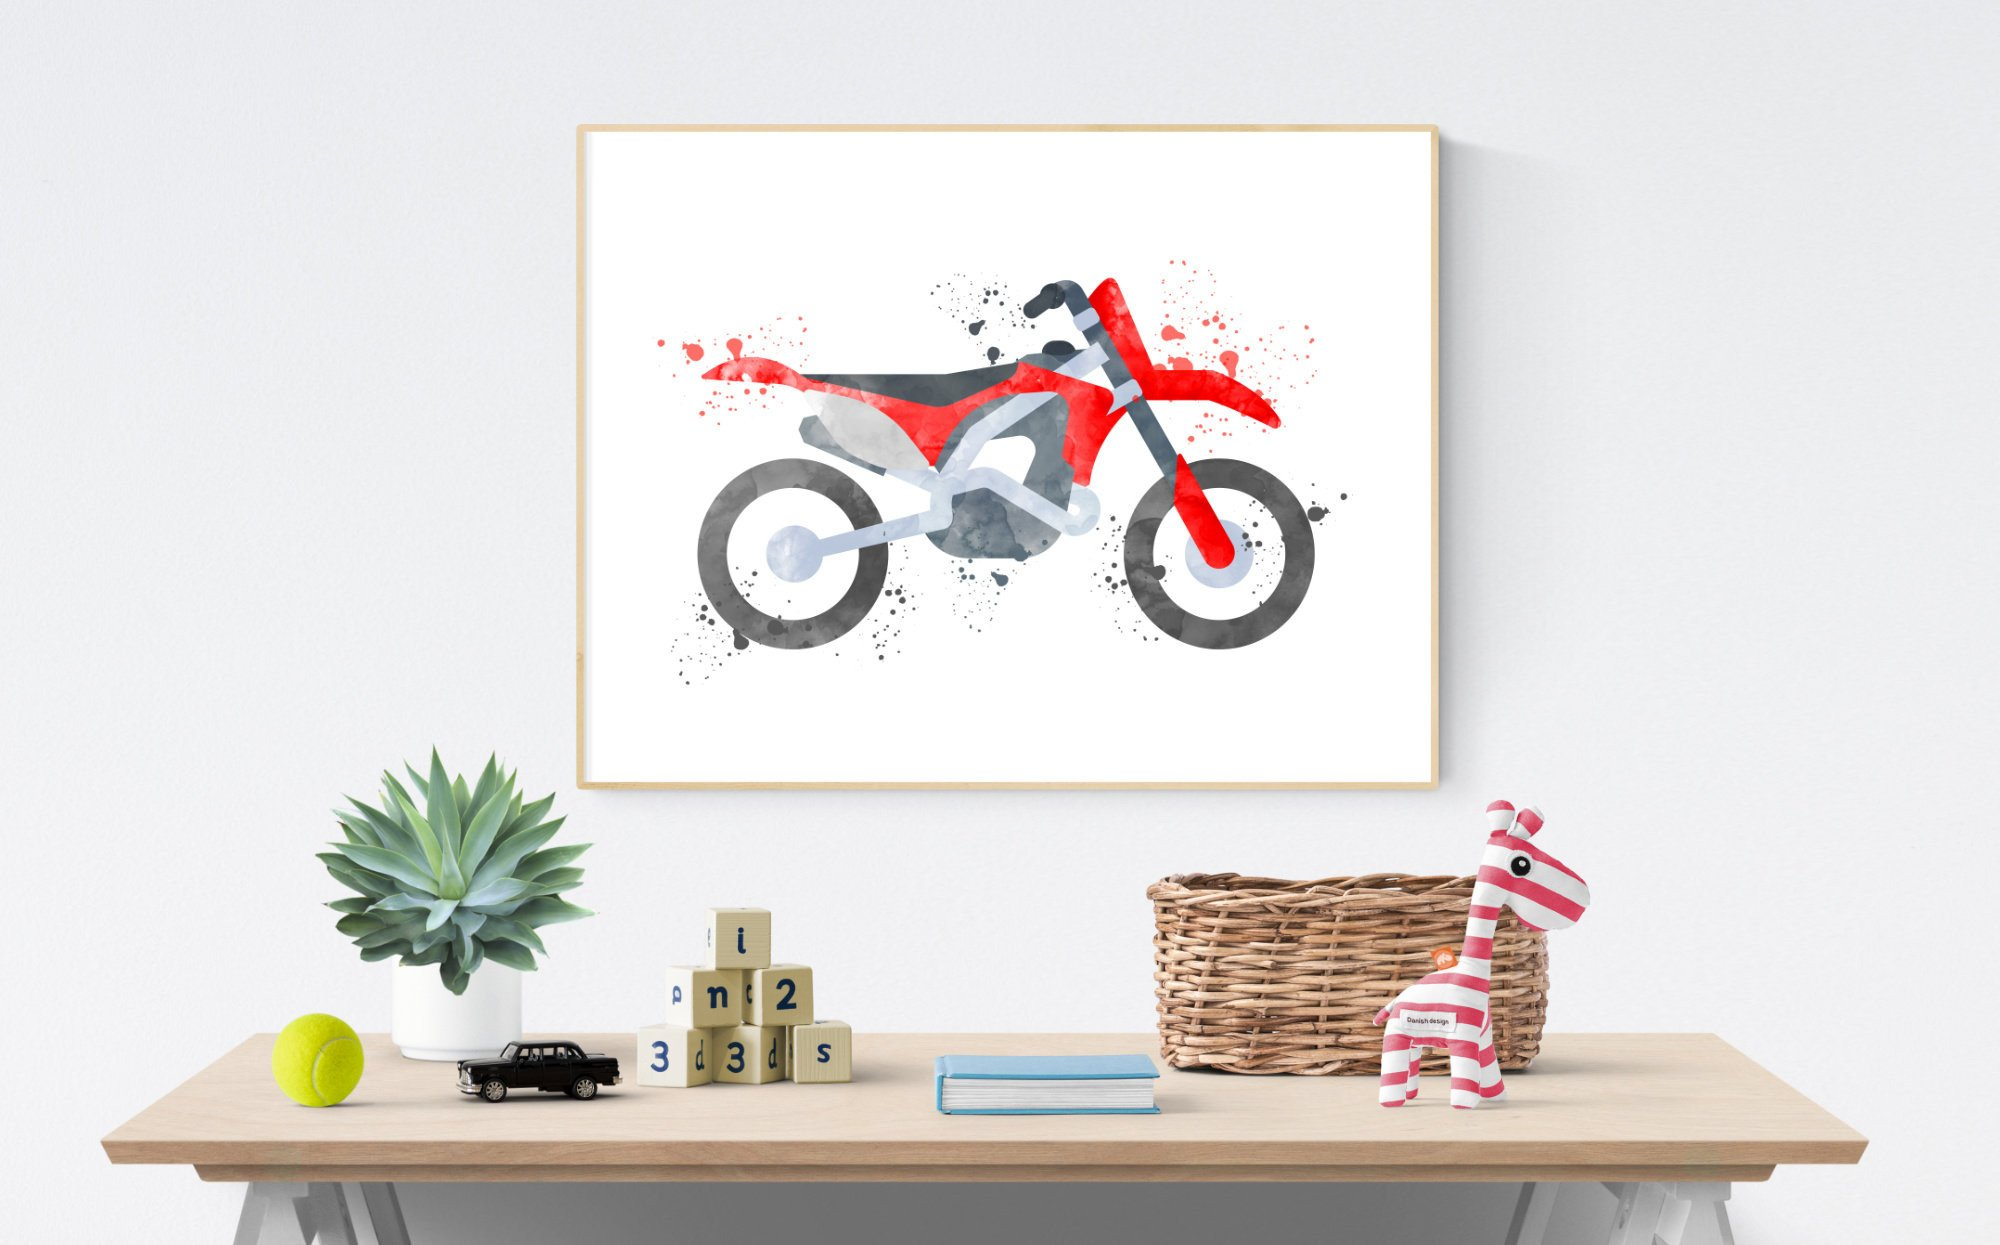 Dirt Bike Bedroom Set Best Of Motorcycle Print Boys Room Decor Art for Kids Motorcycle Wall Art Boy Bedroom Wall Art Motorbike Print Motorcycle Decor Kids Room